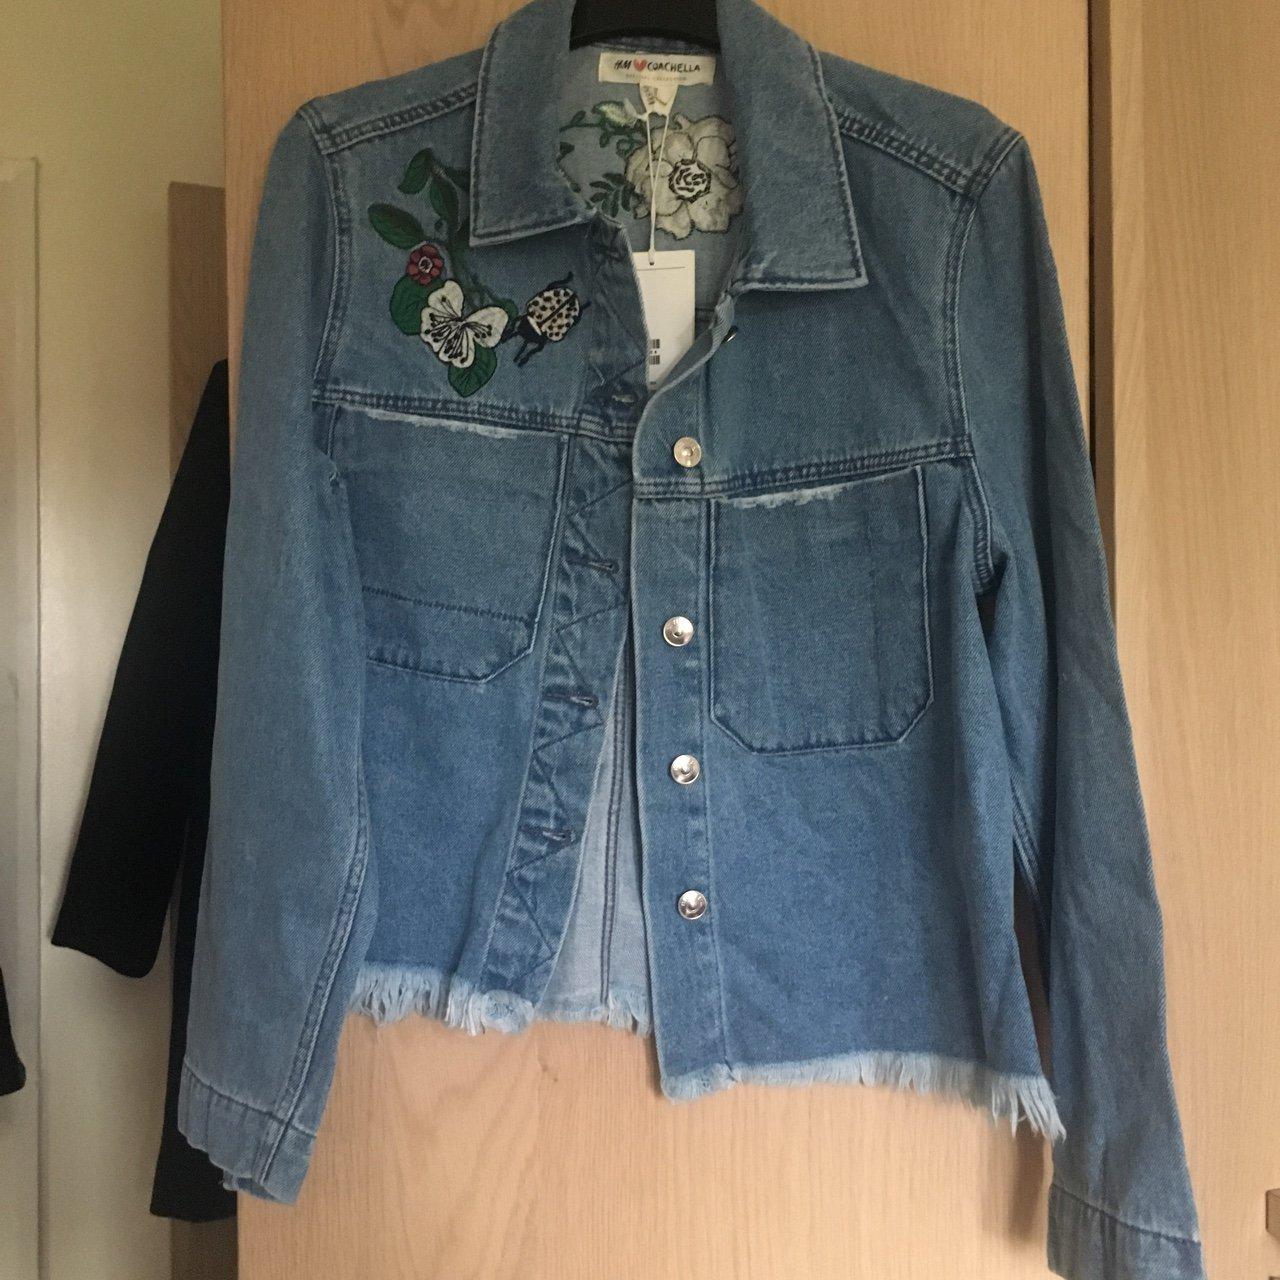 8b9f0a01dc9 H M Coachella collection denim jacket. Size 18 but doesn t - Depop